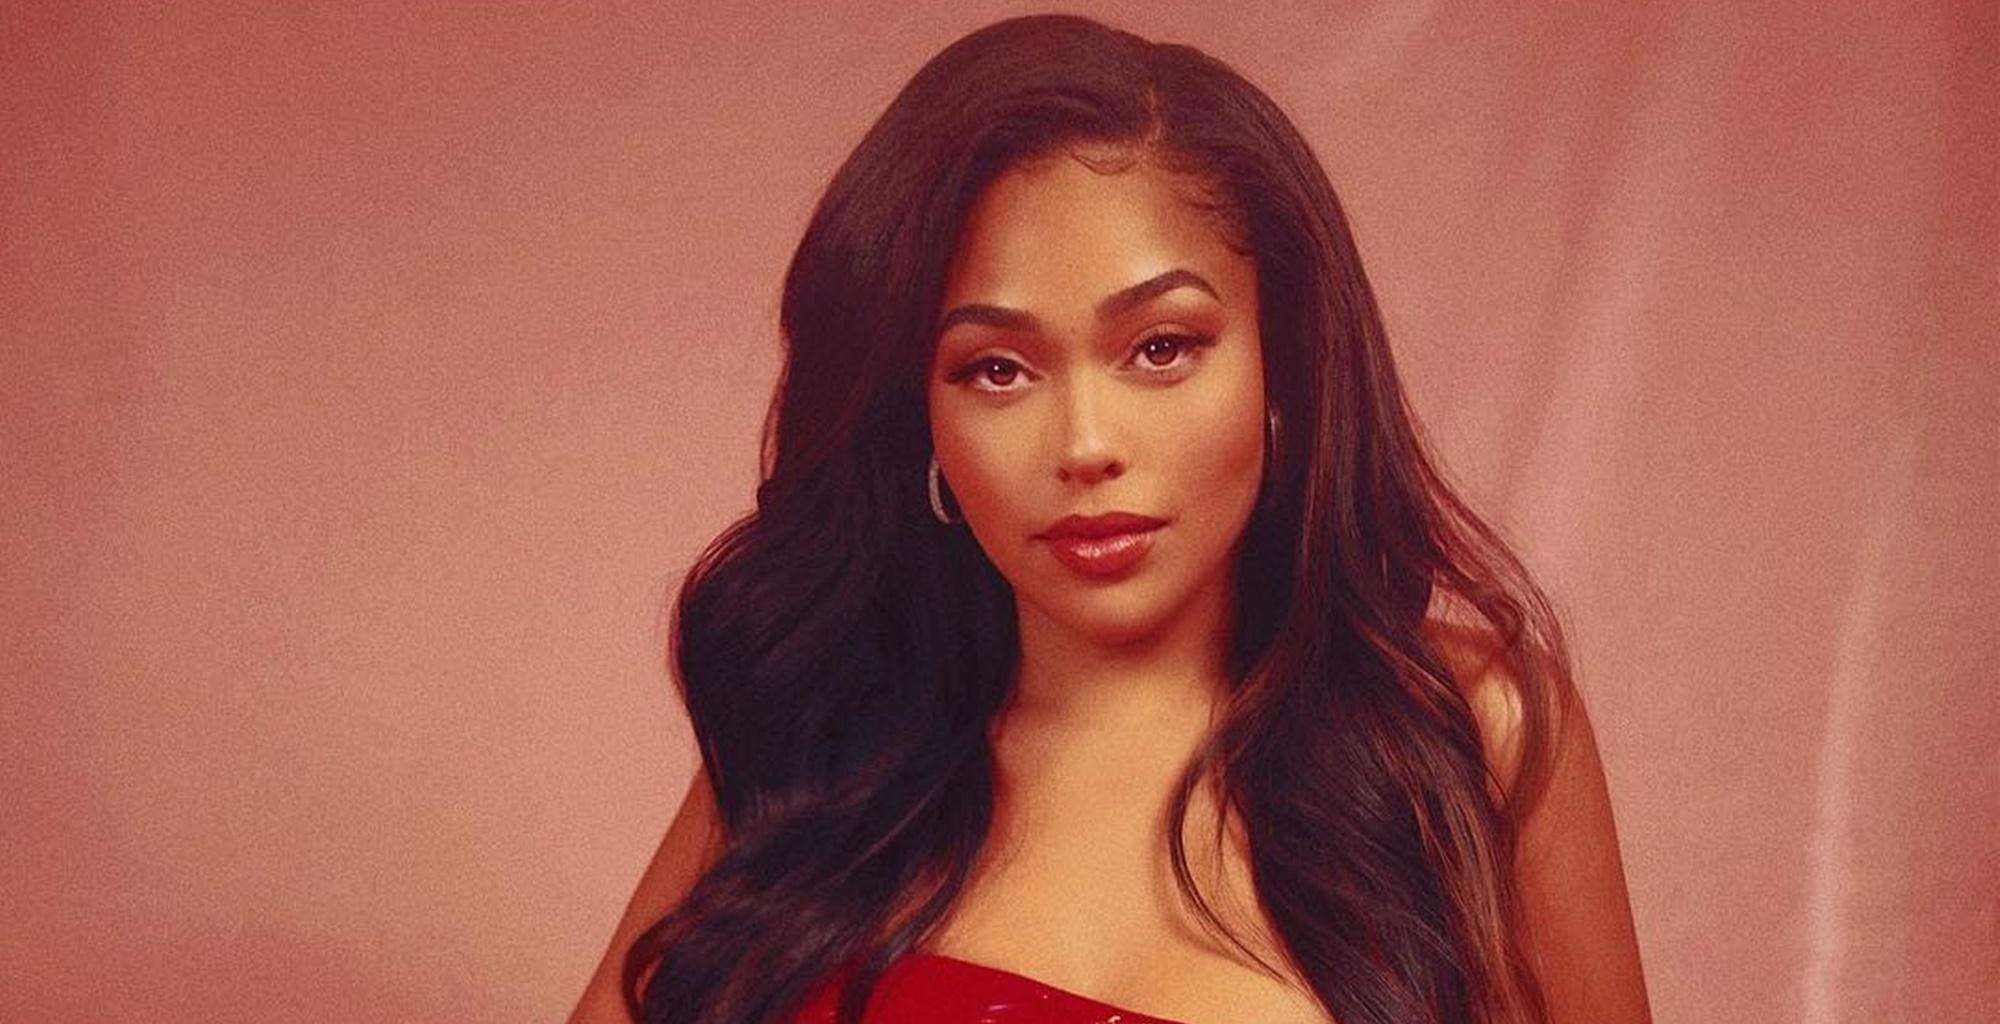 Jordyn Woods Shares Sizzling New Pictures In The Middle Of Khloe Kardashian And Tristan Thompson's Latest Cheating Scandal